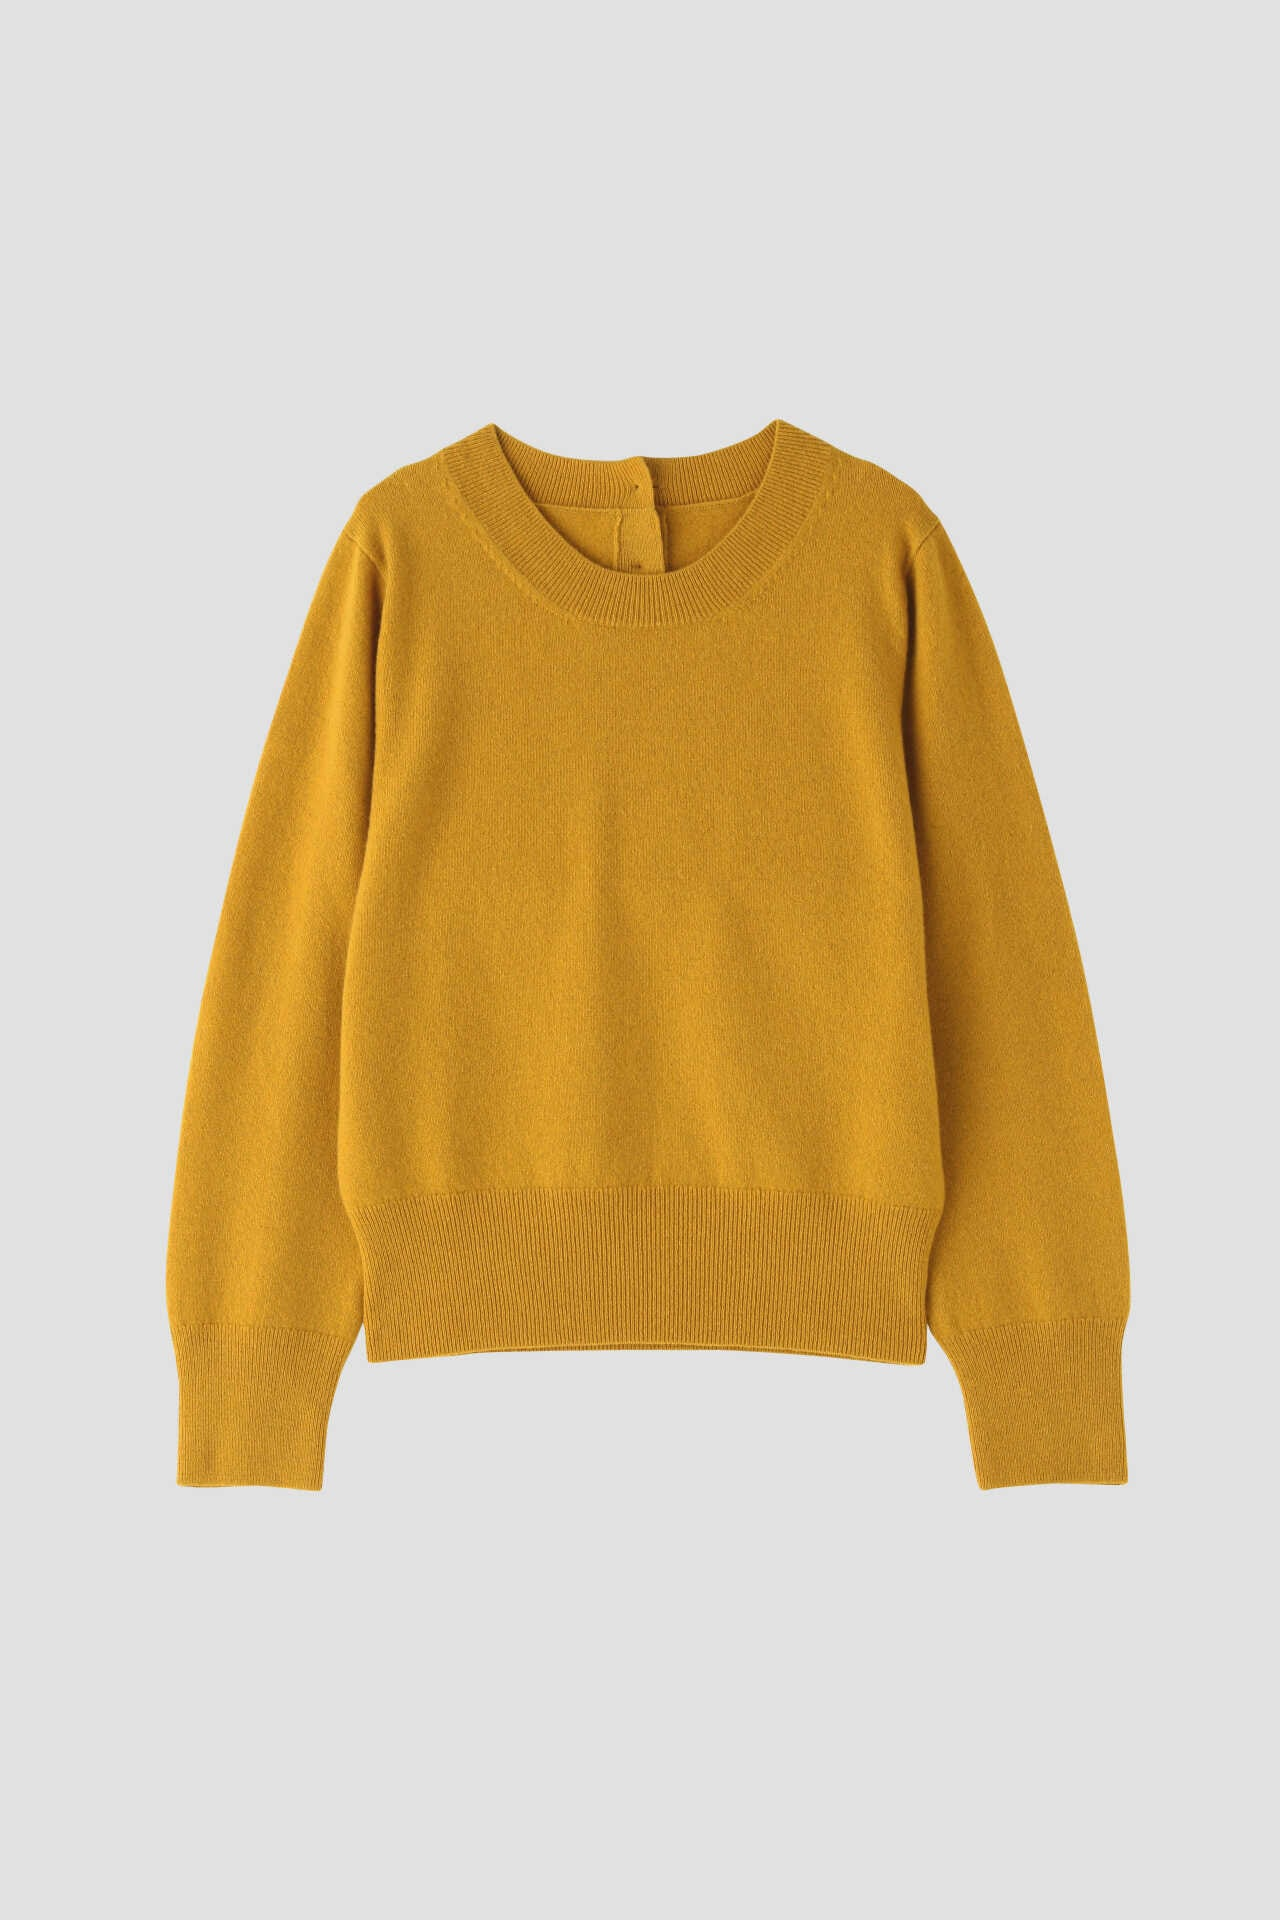 LAMBSWOOL CASHMERE5